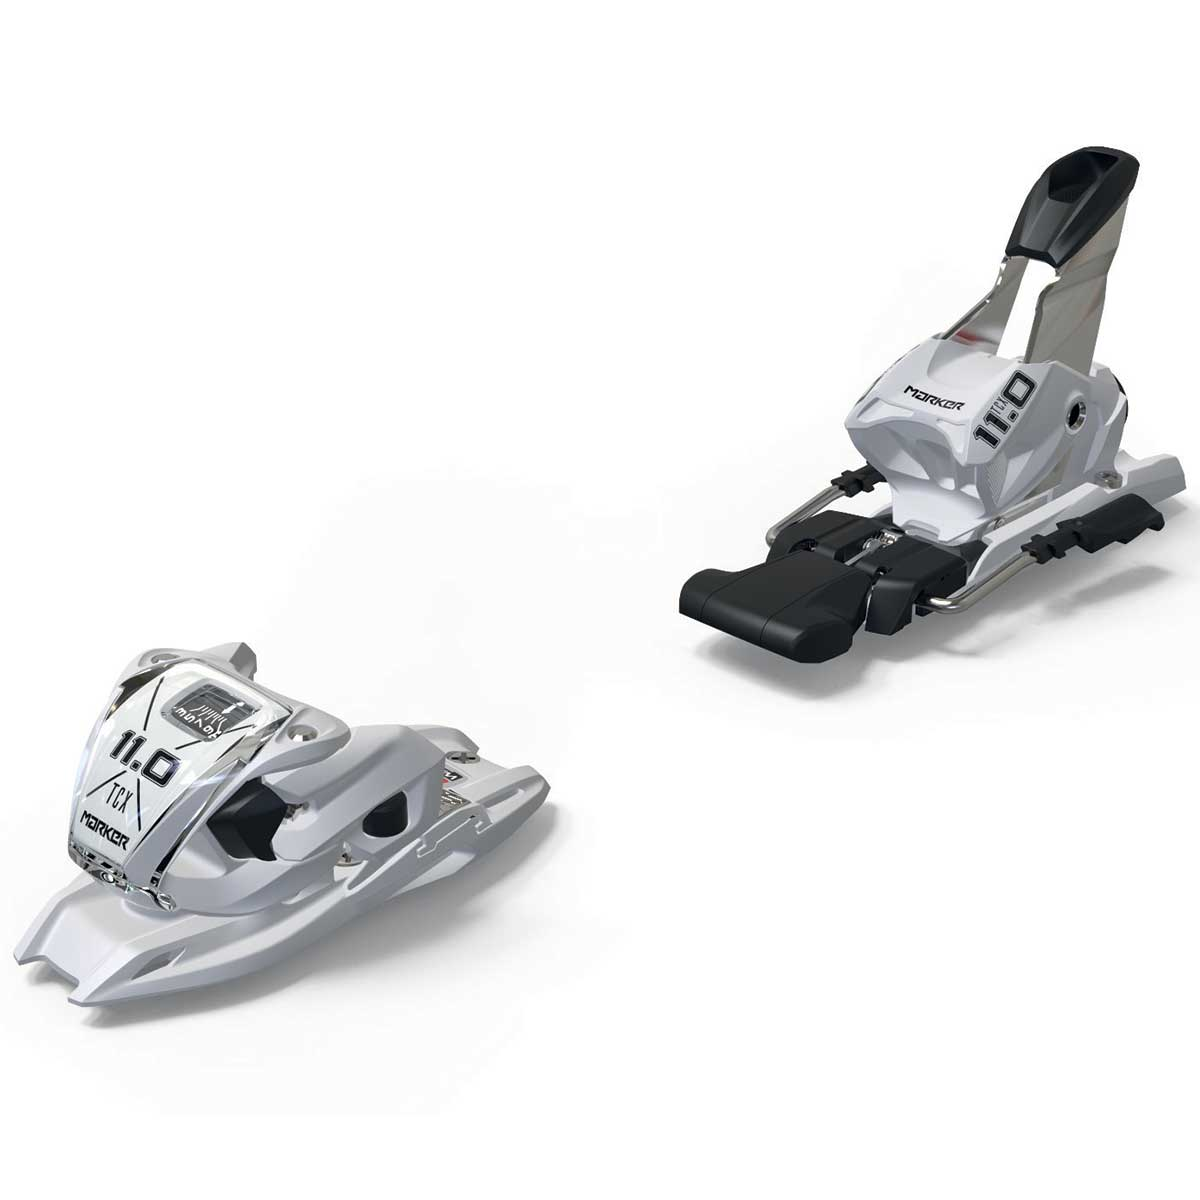 Marker 11.0 TP ski binding in white